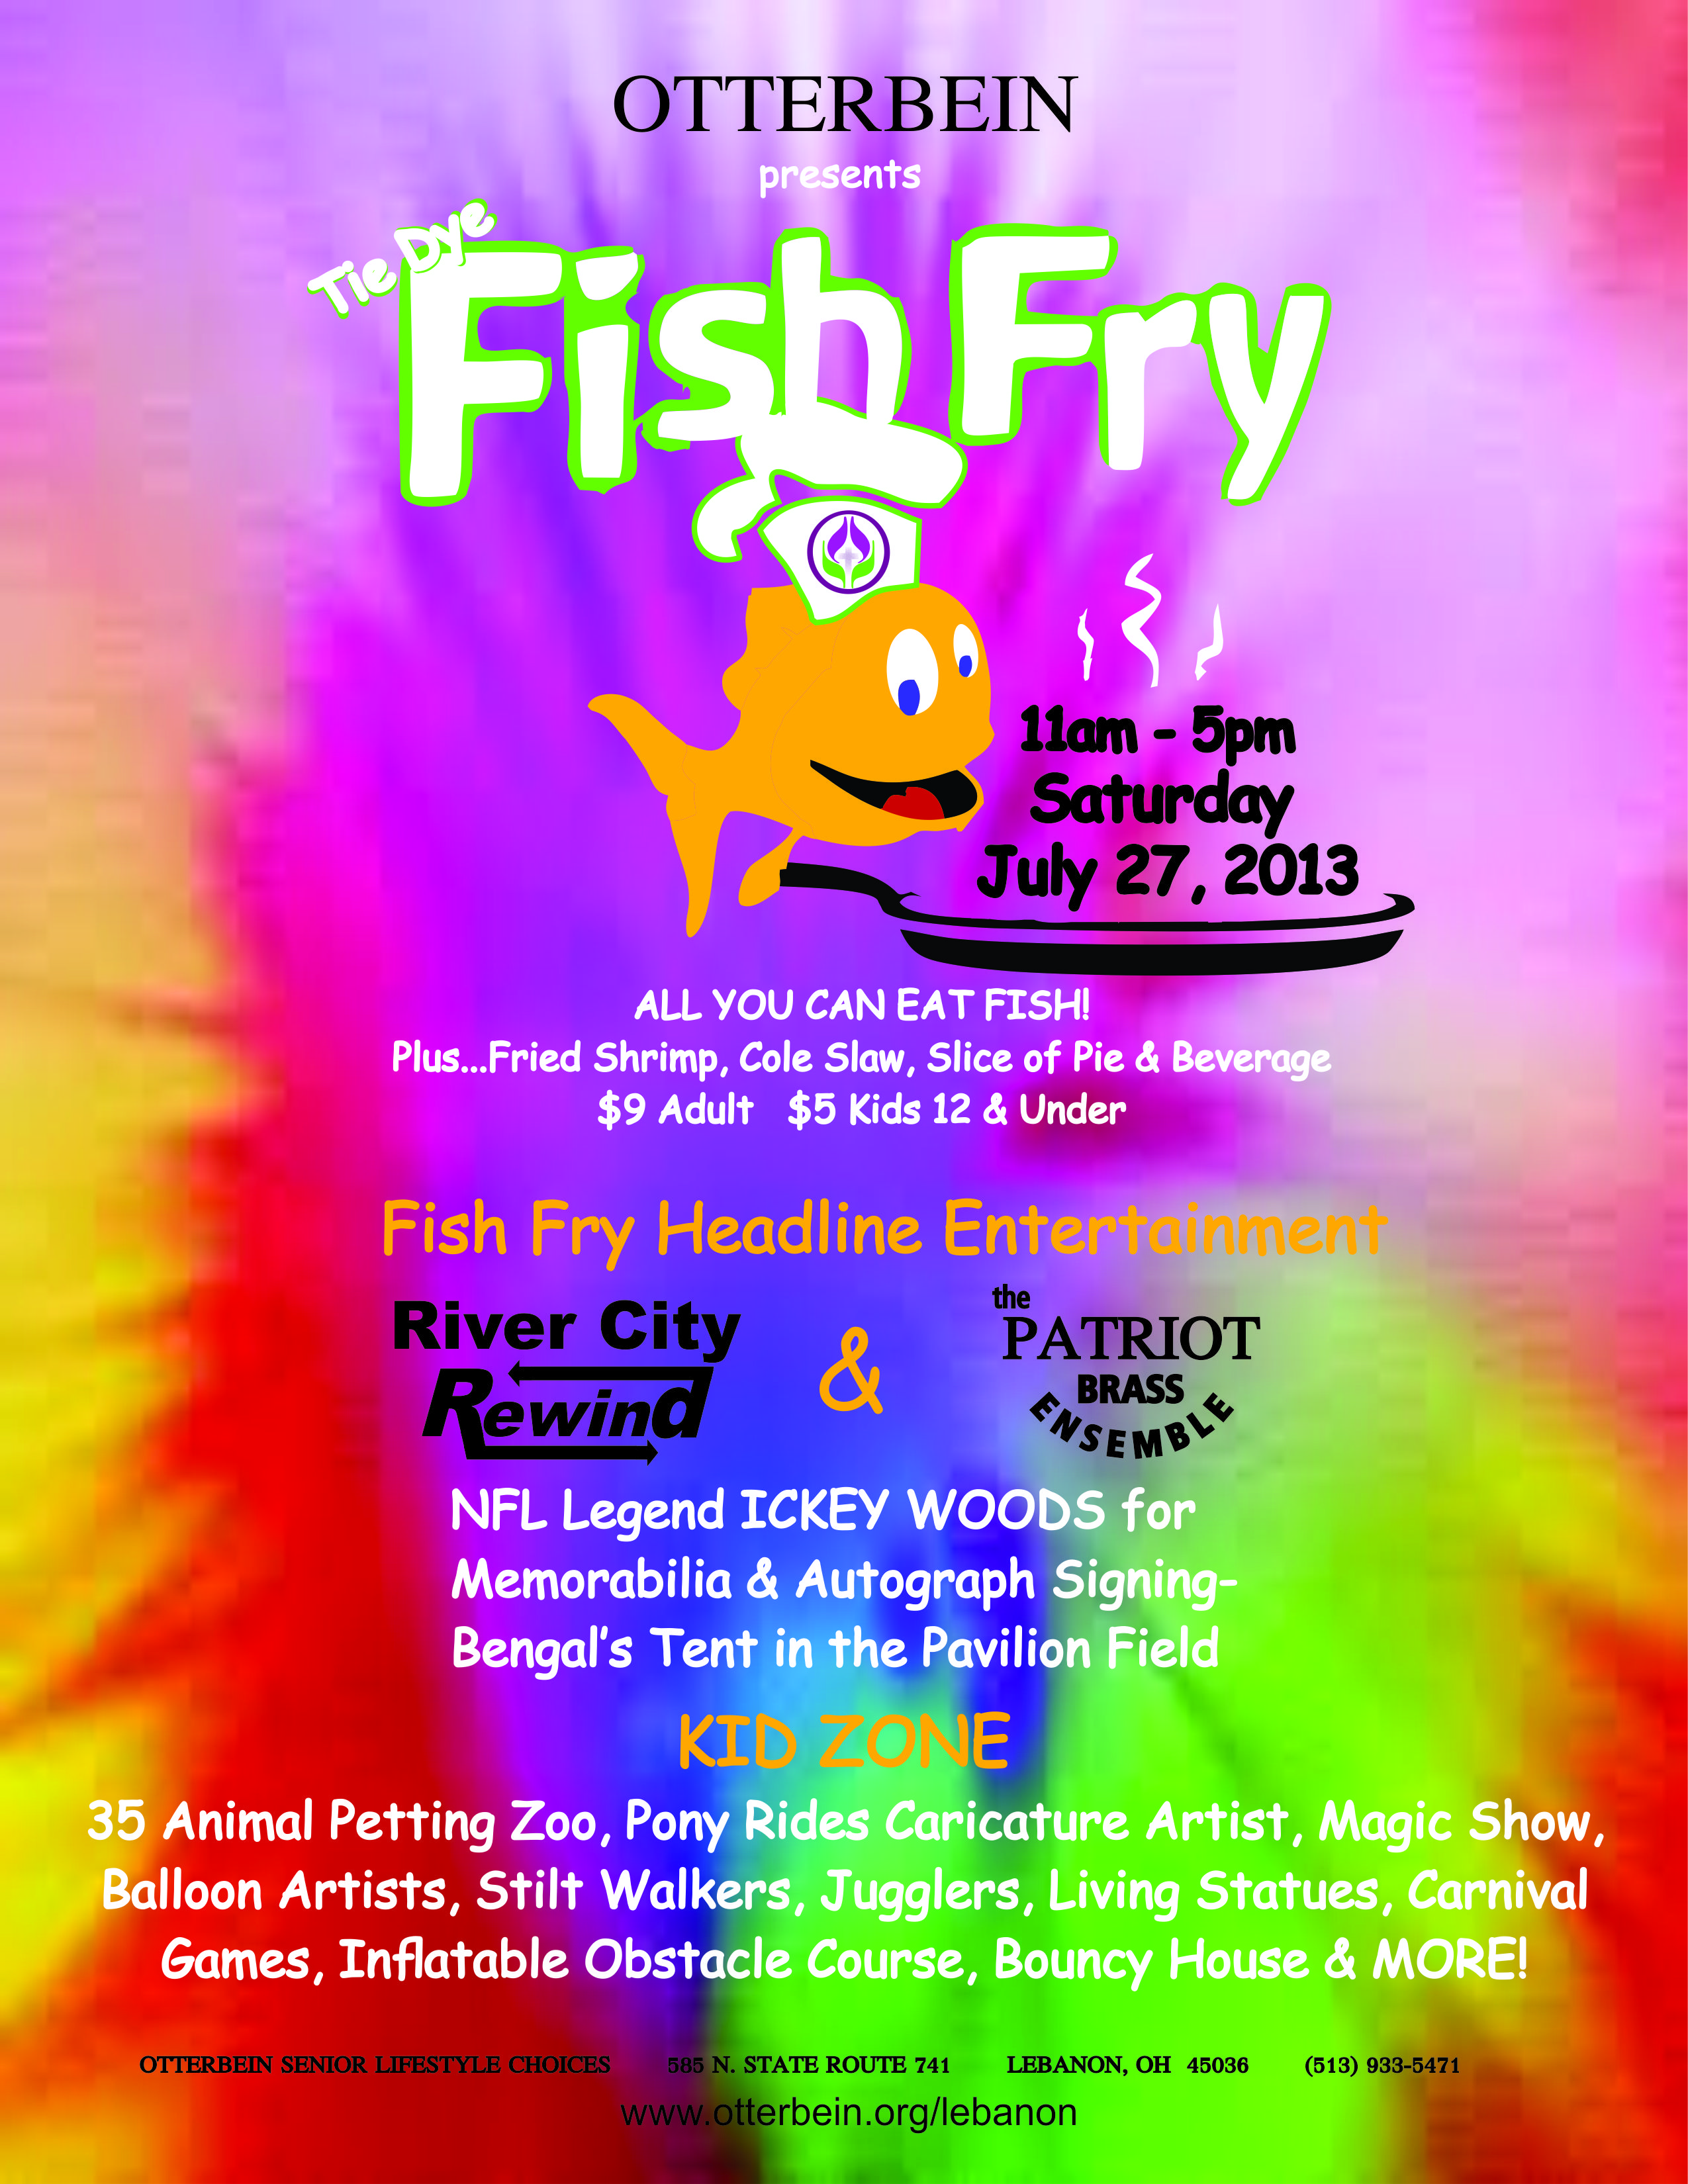 Otterbein Lebanon Welcomes Public To Its 45th Annual Fish Fry